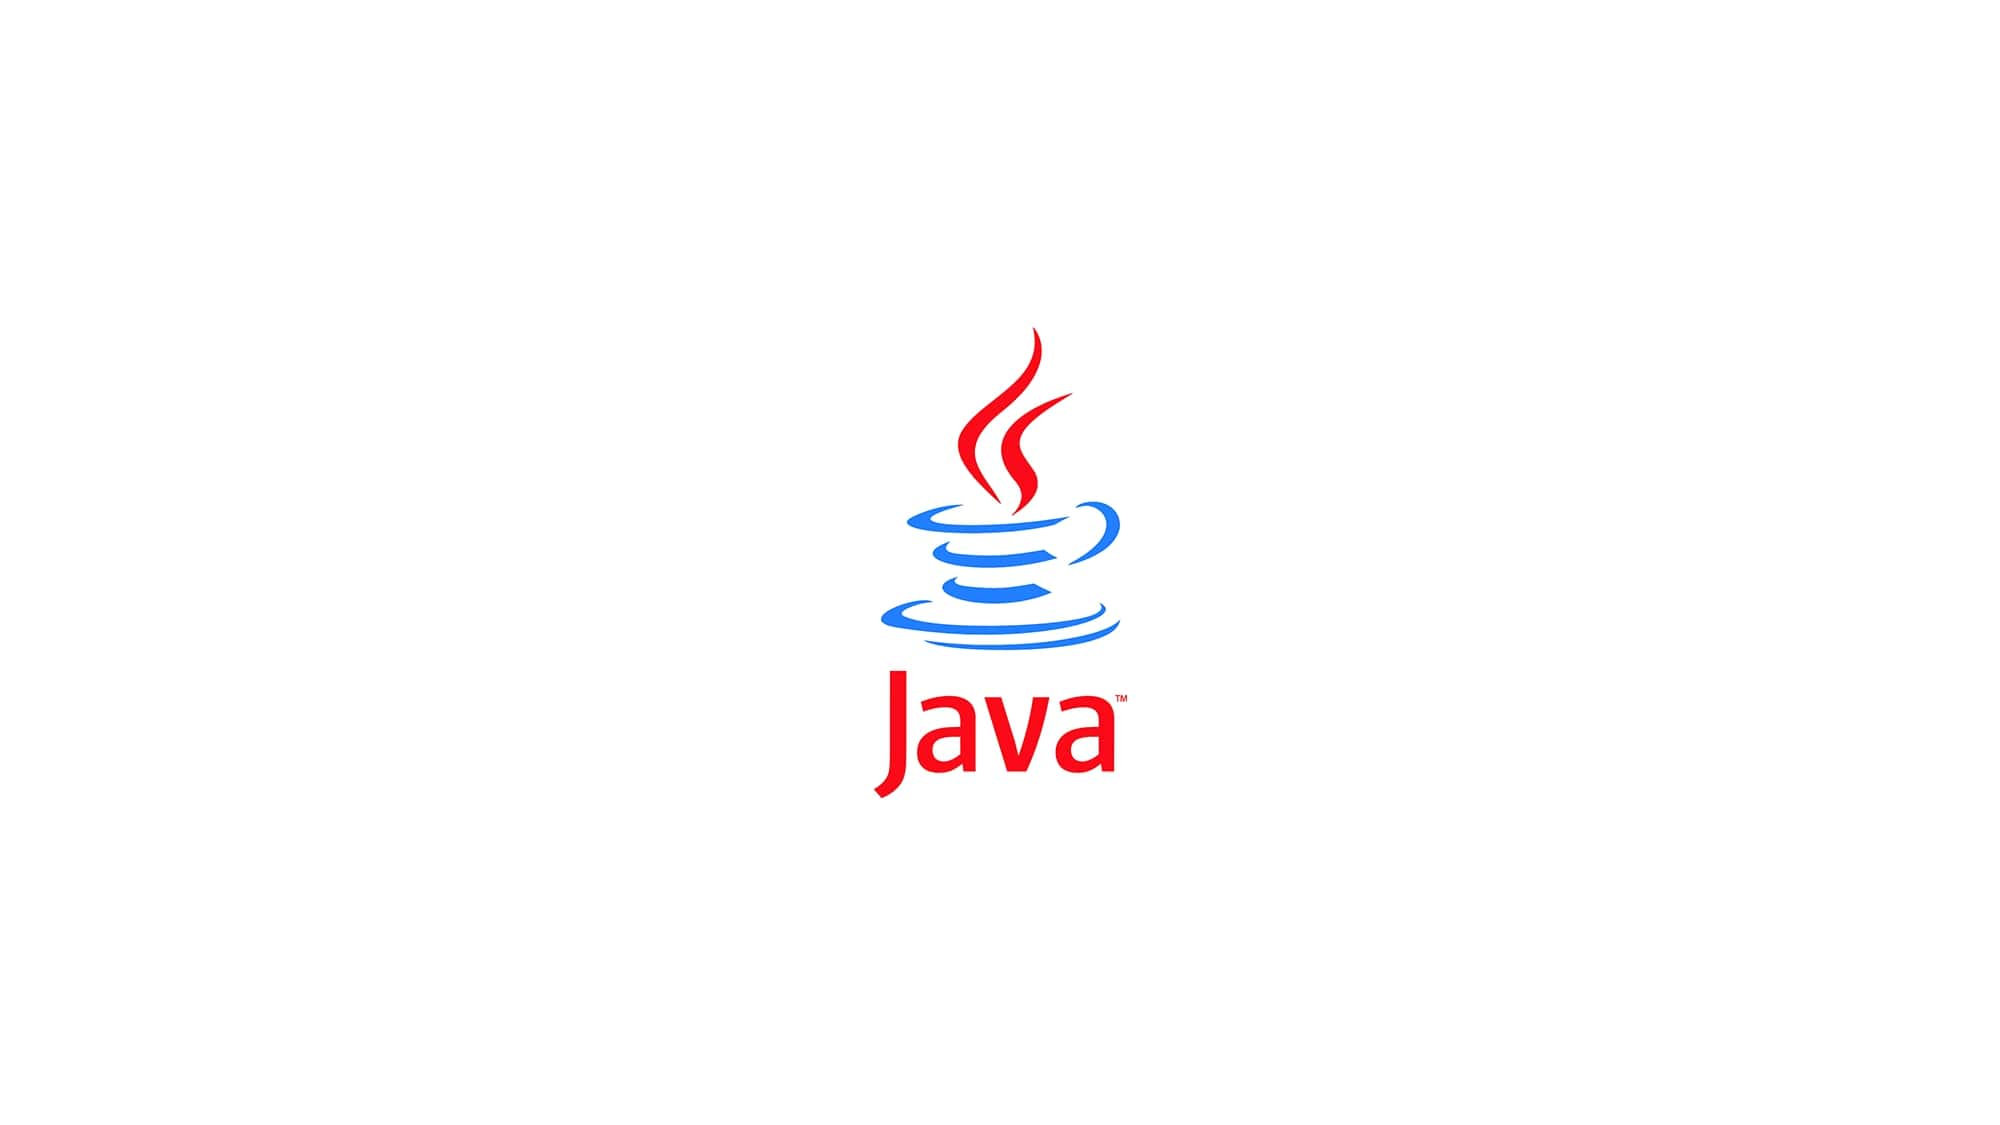 Come installare Java su Mx 18 Linux